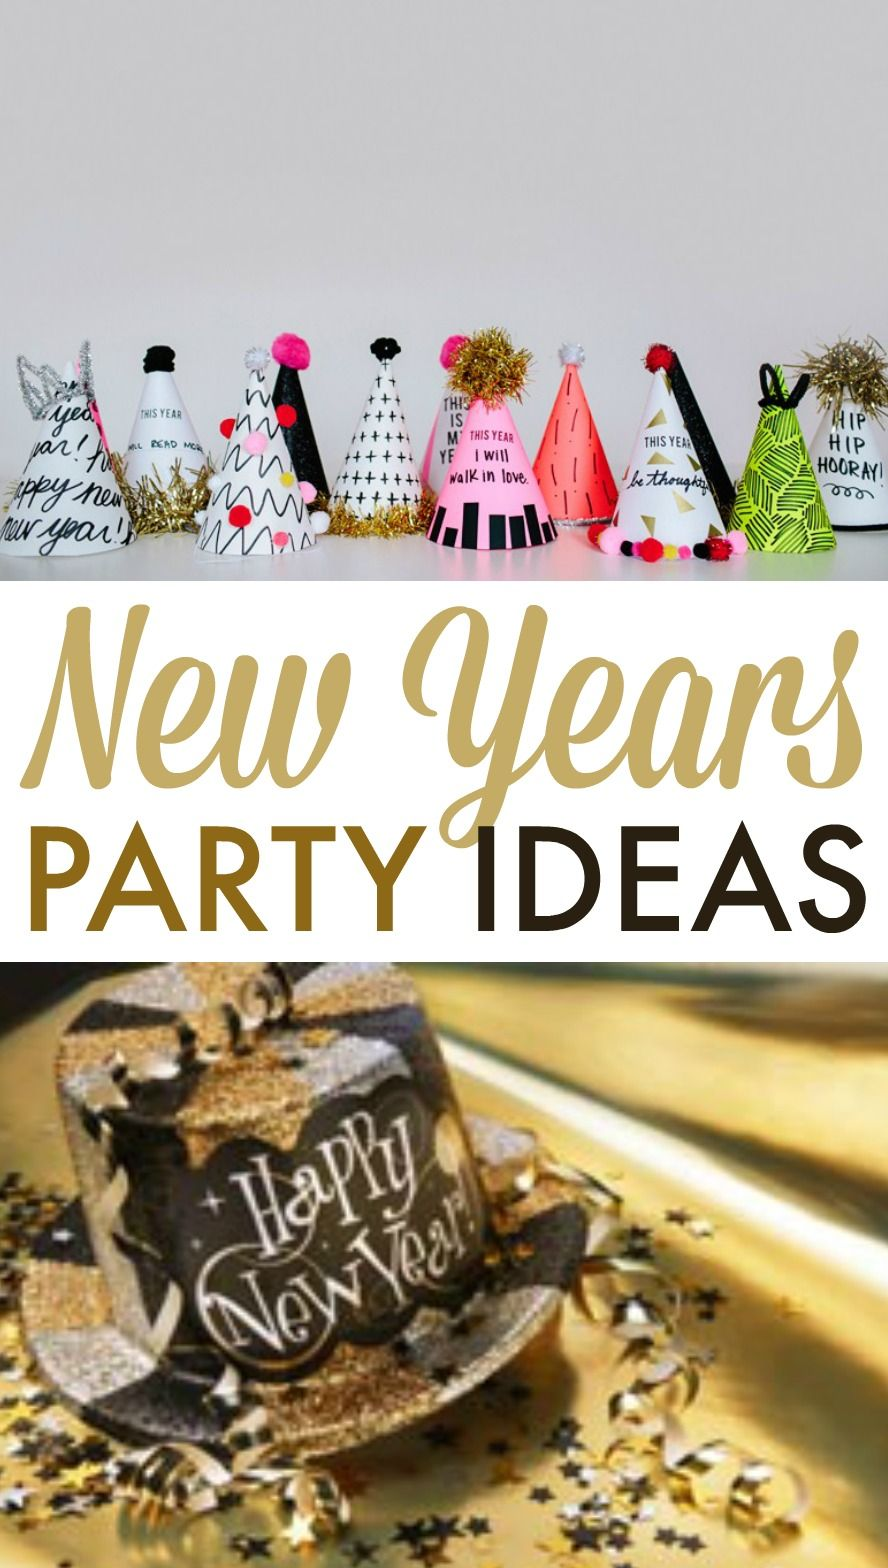 New Years Party Ideas Diy party crafts, Diy party favors